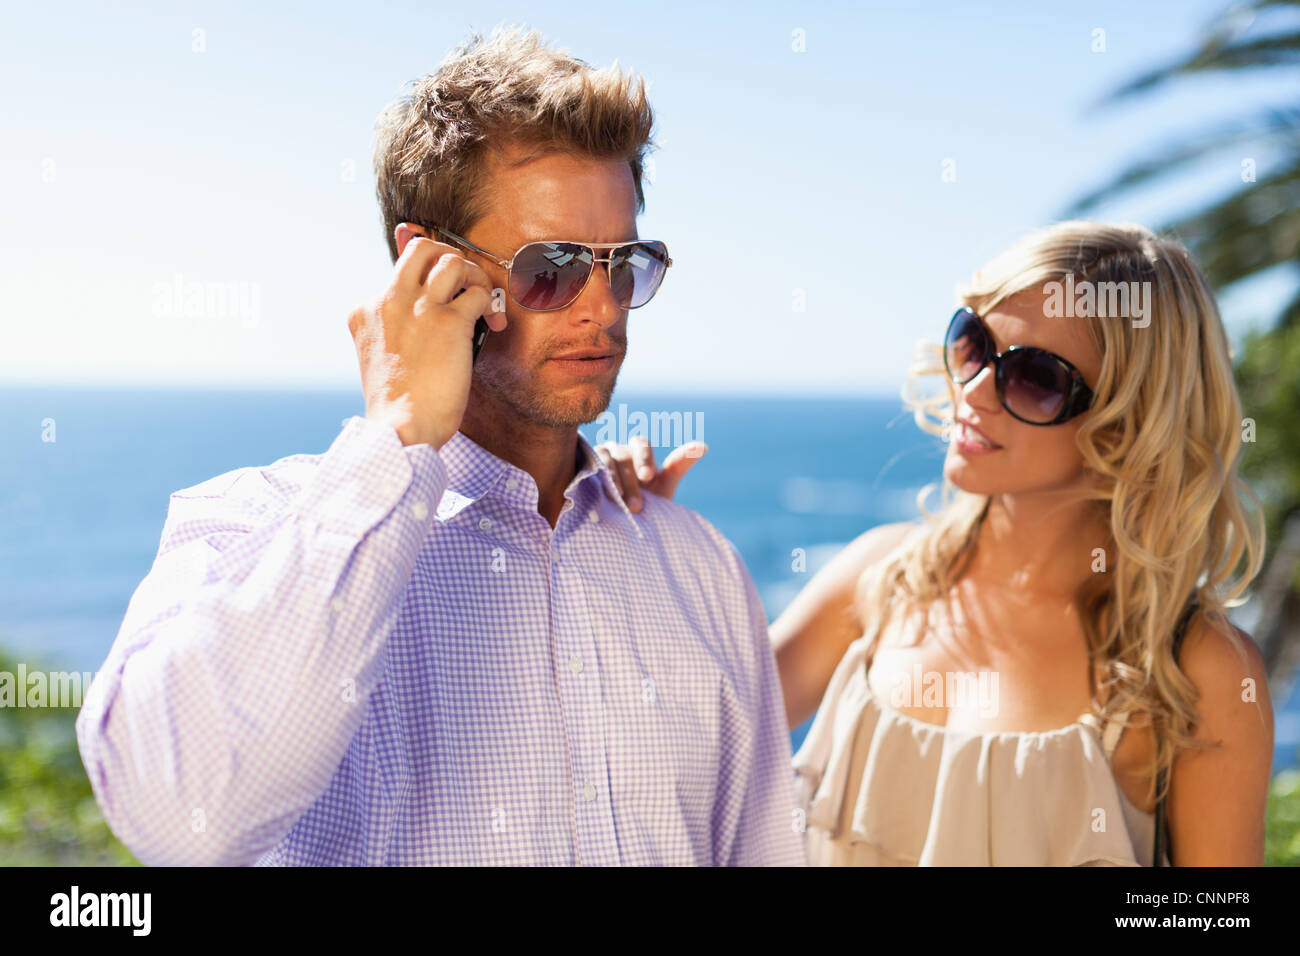 L'homme ignorant copine pour cell phone Photo Stock